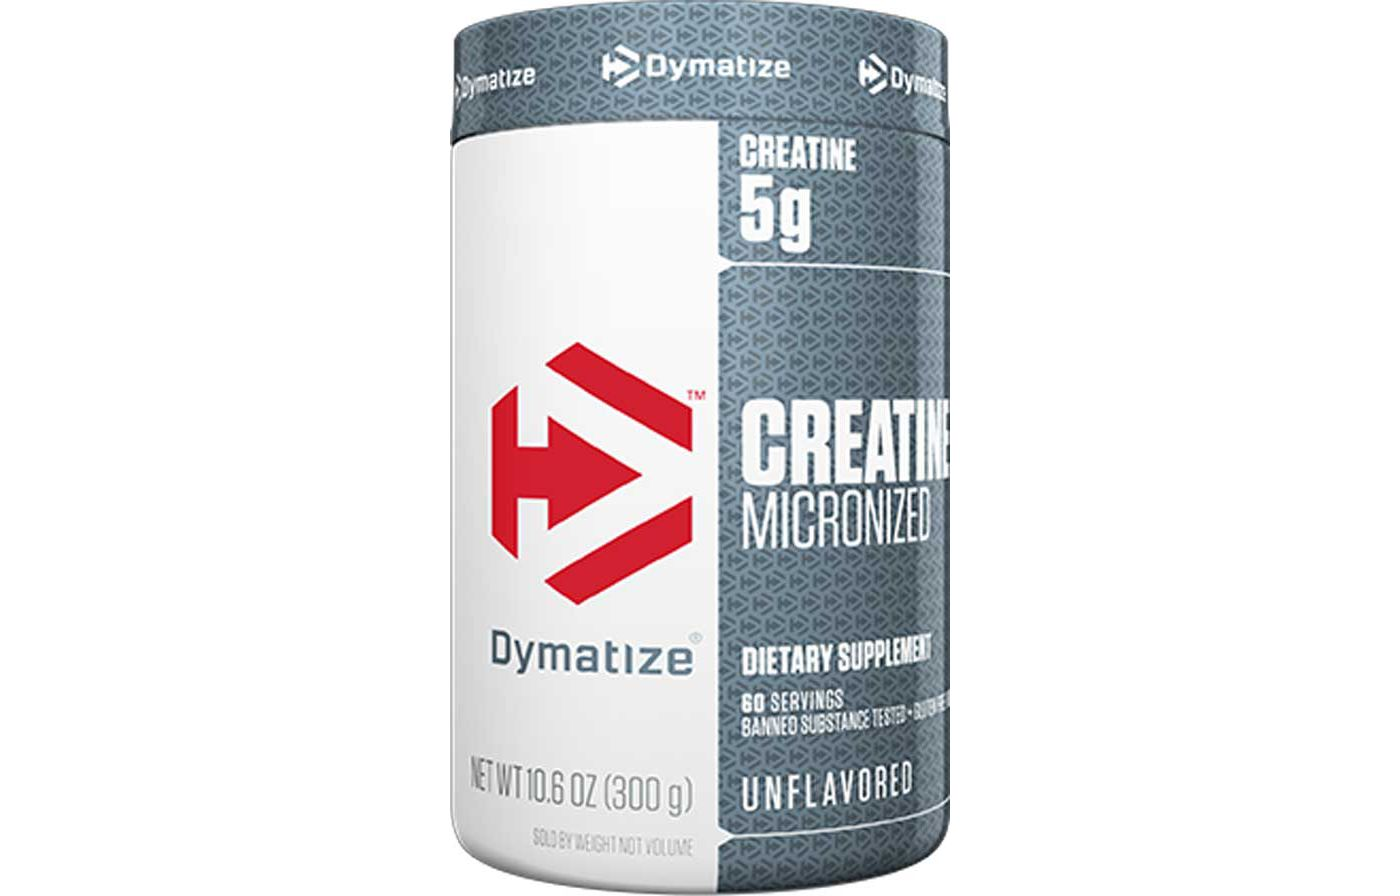 Dymatize Creatine Powder 2.2 LBS